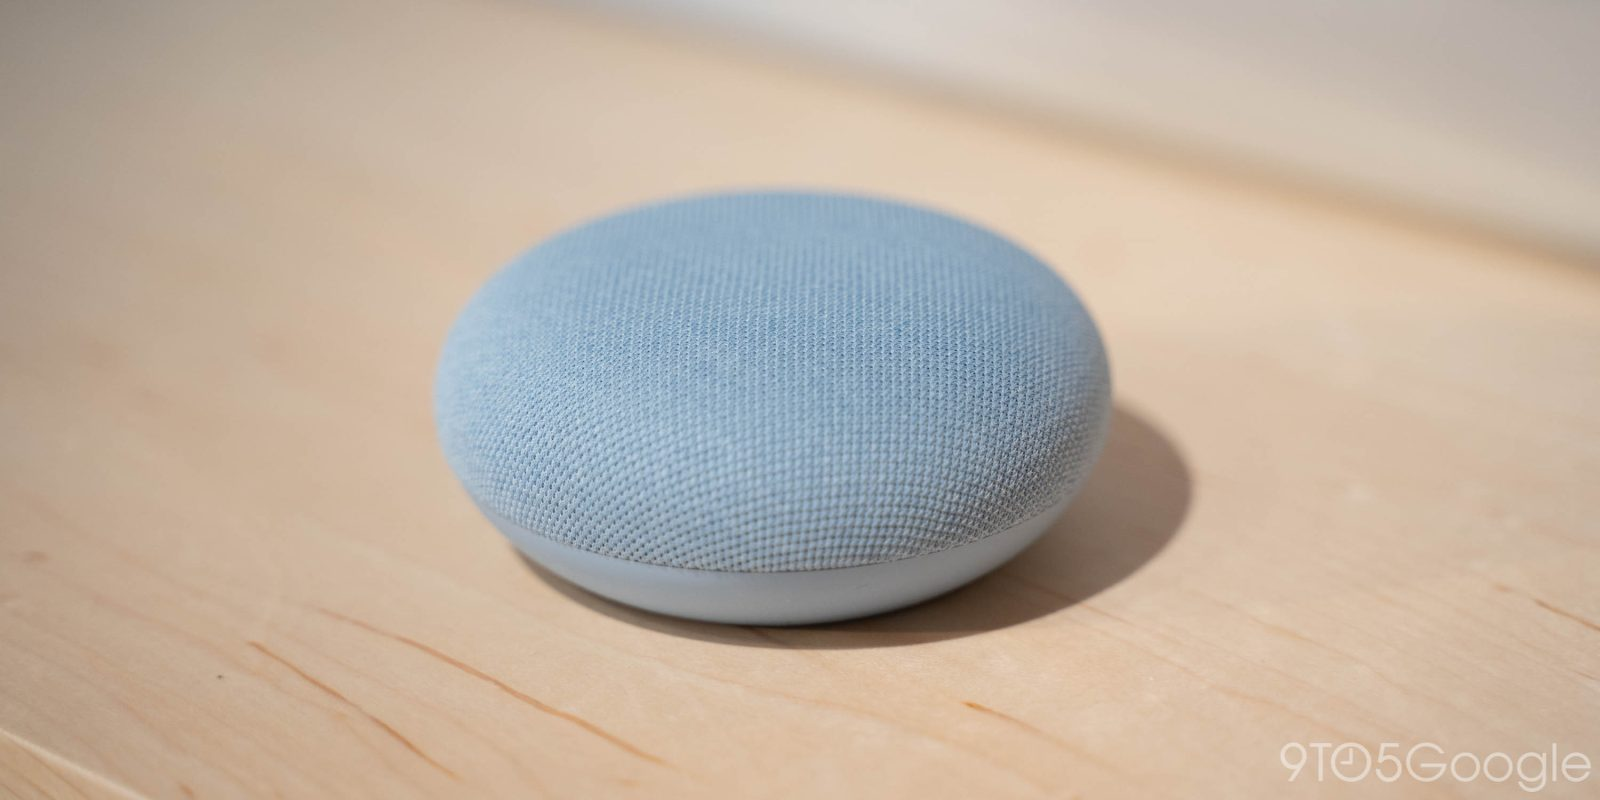 Google Nest Mini hands-on: Barely new in all the best ways [Video]